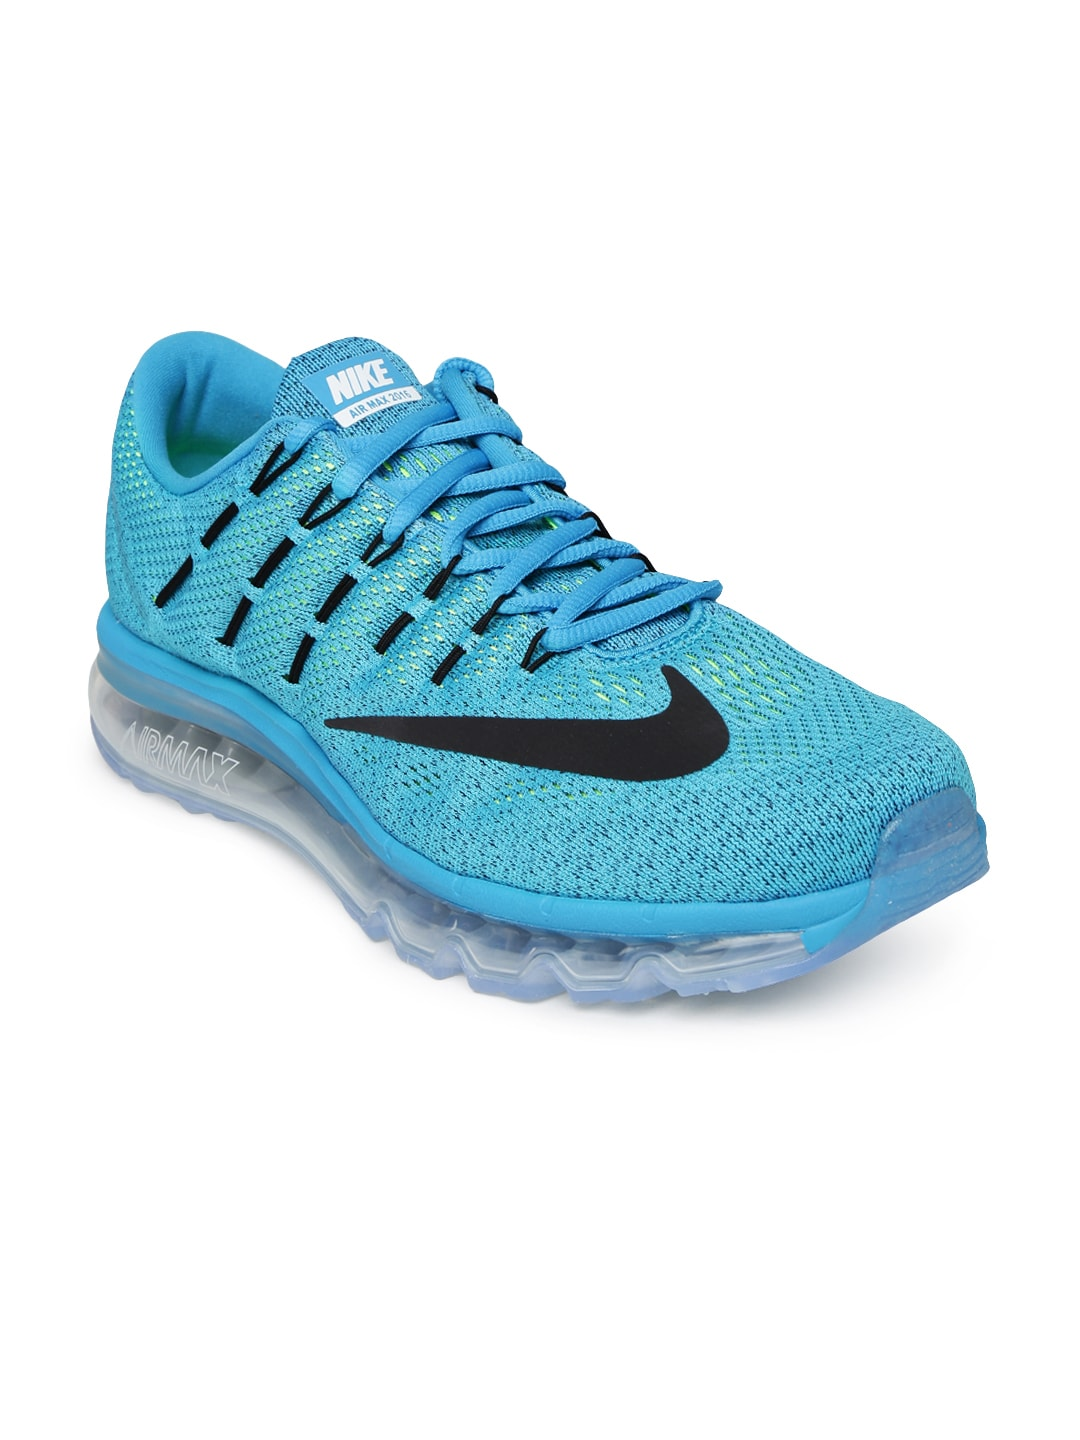 60ee027c2c Nike 806771-400 Men Blue Air Max 2016 Running Shoes - Best Price ...